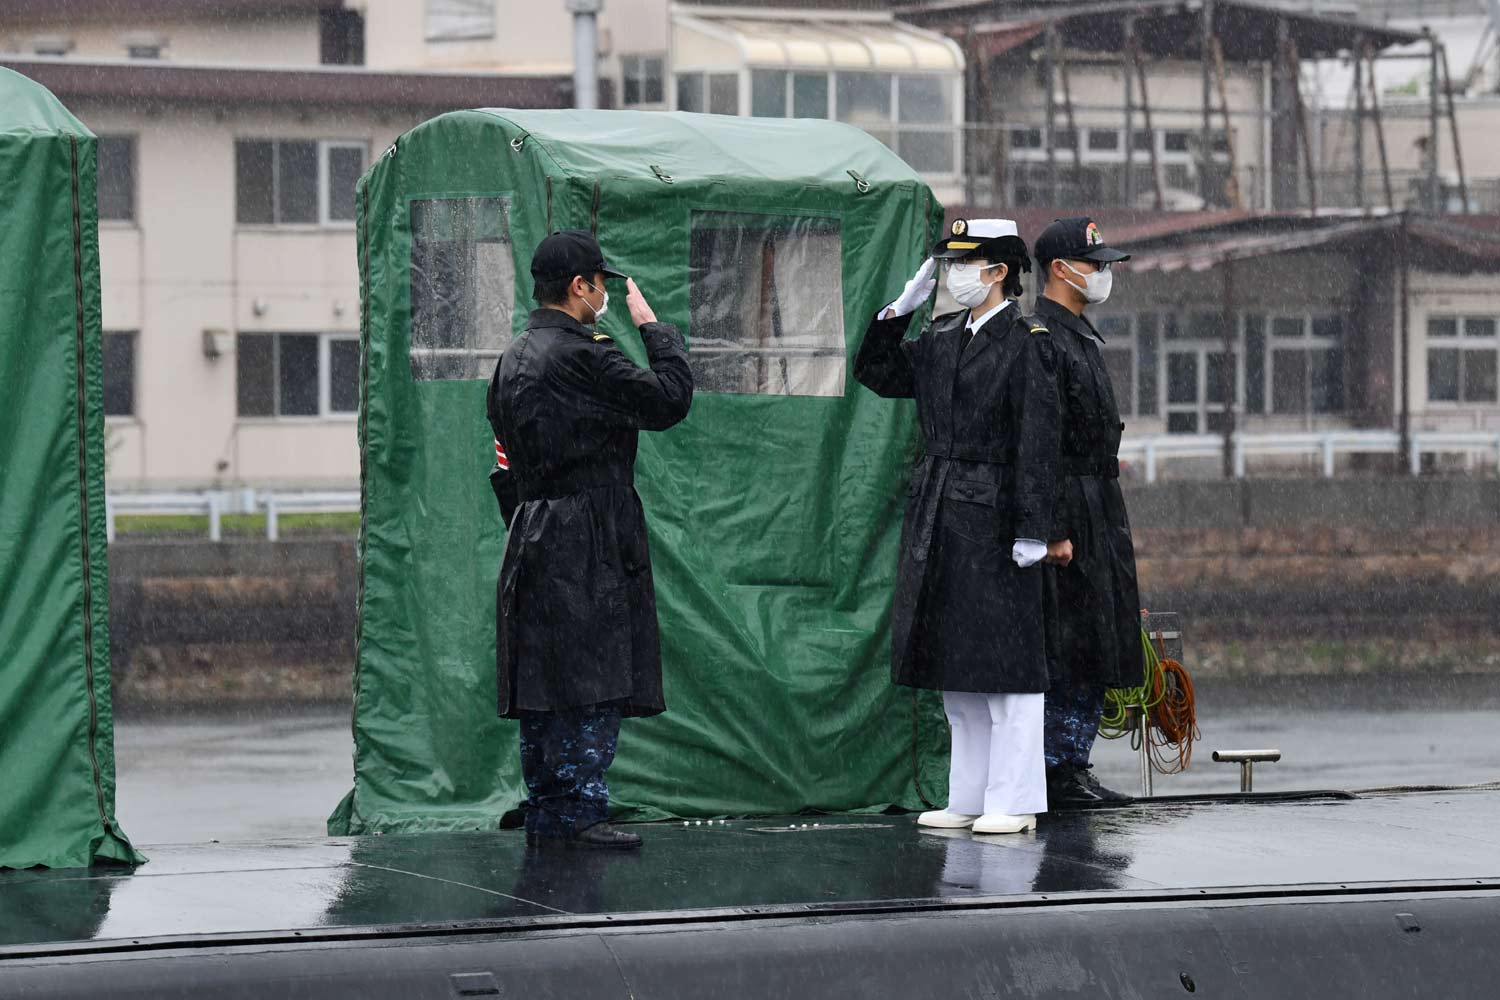 Japan Maritime Self-Defense Force Appoints First Female officer to Serve on Attack Submarines